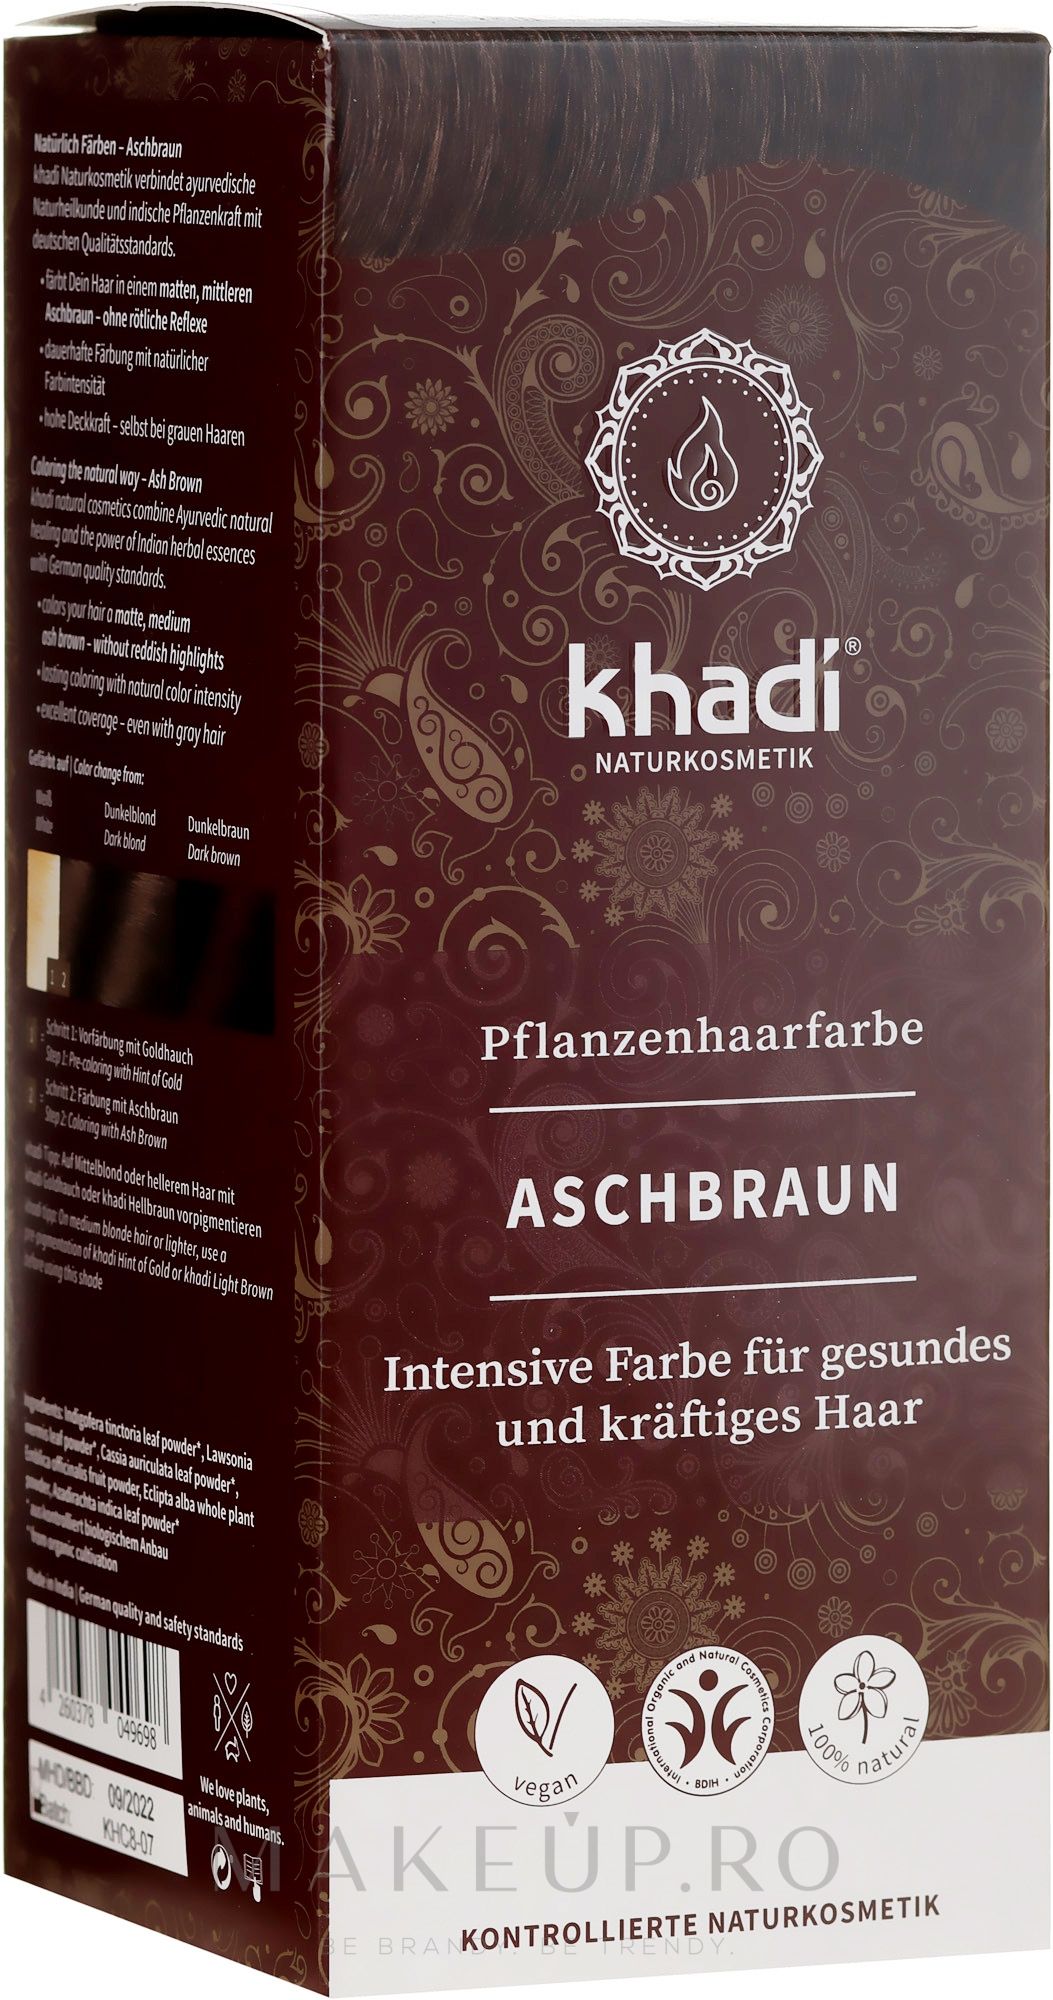 Vopsea organică de păr - Khadi Haarfarbe — Imagine Ash Brown